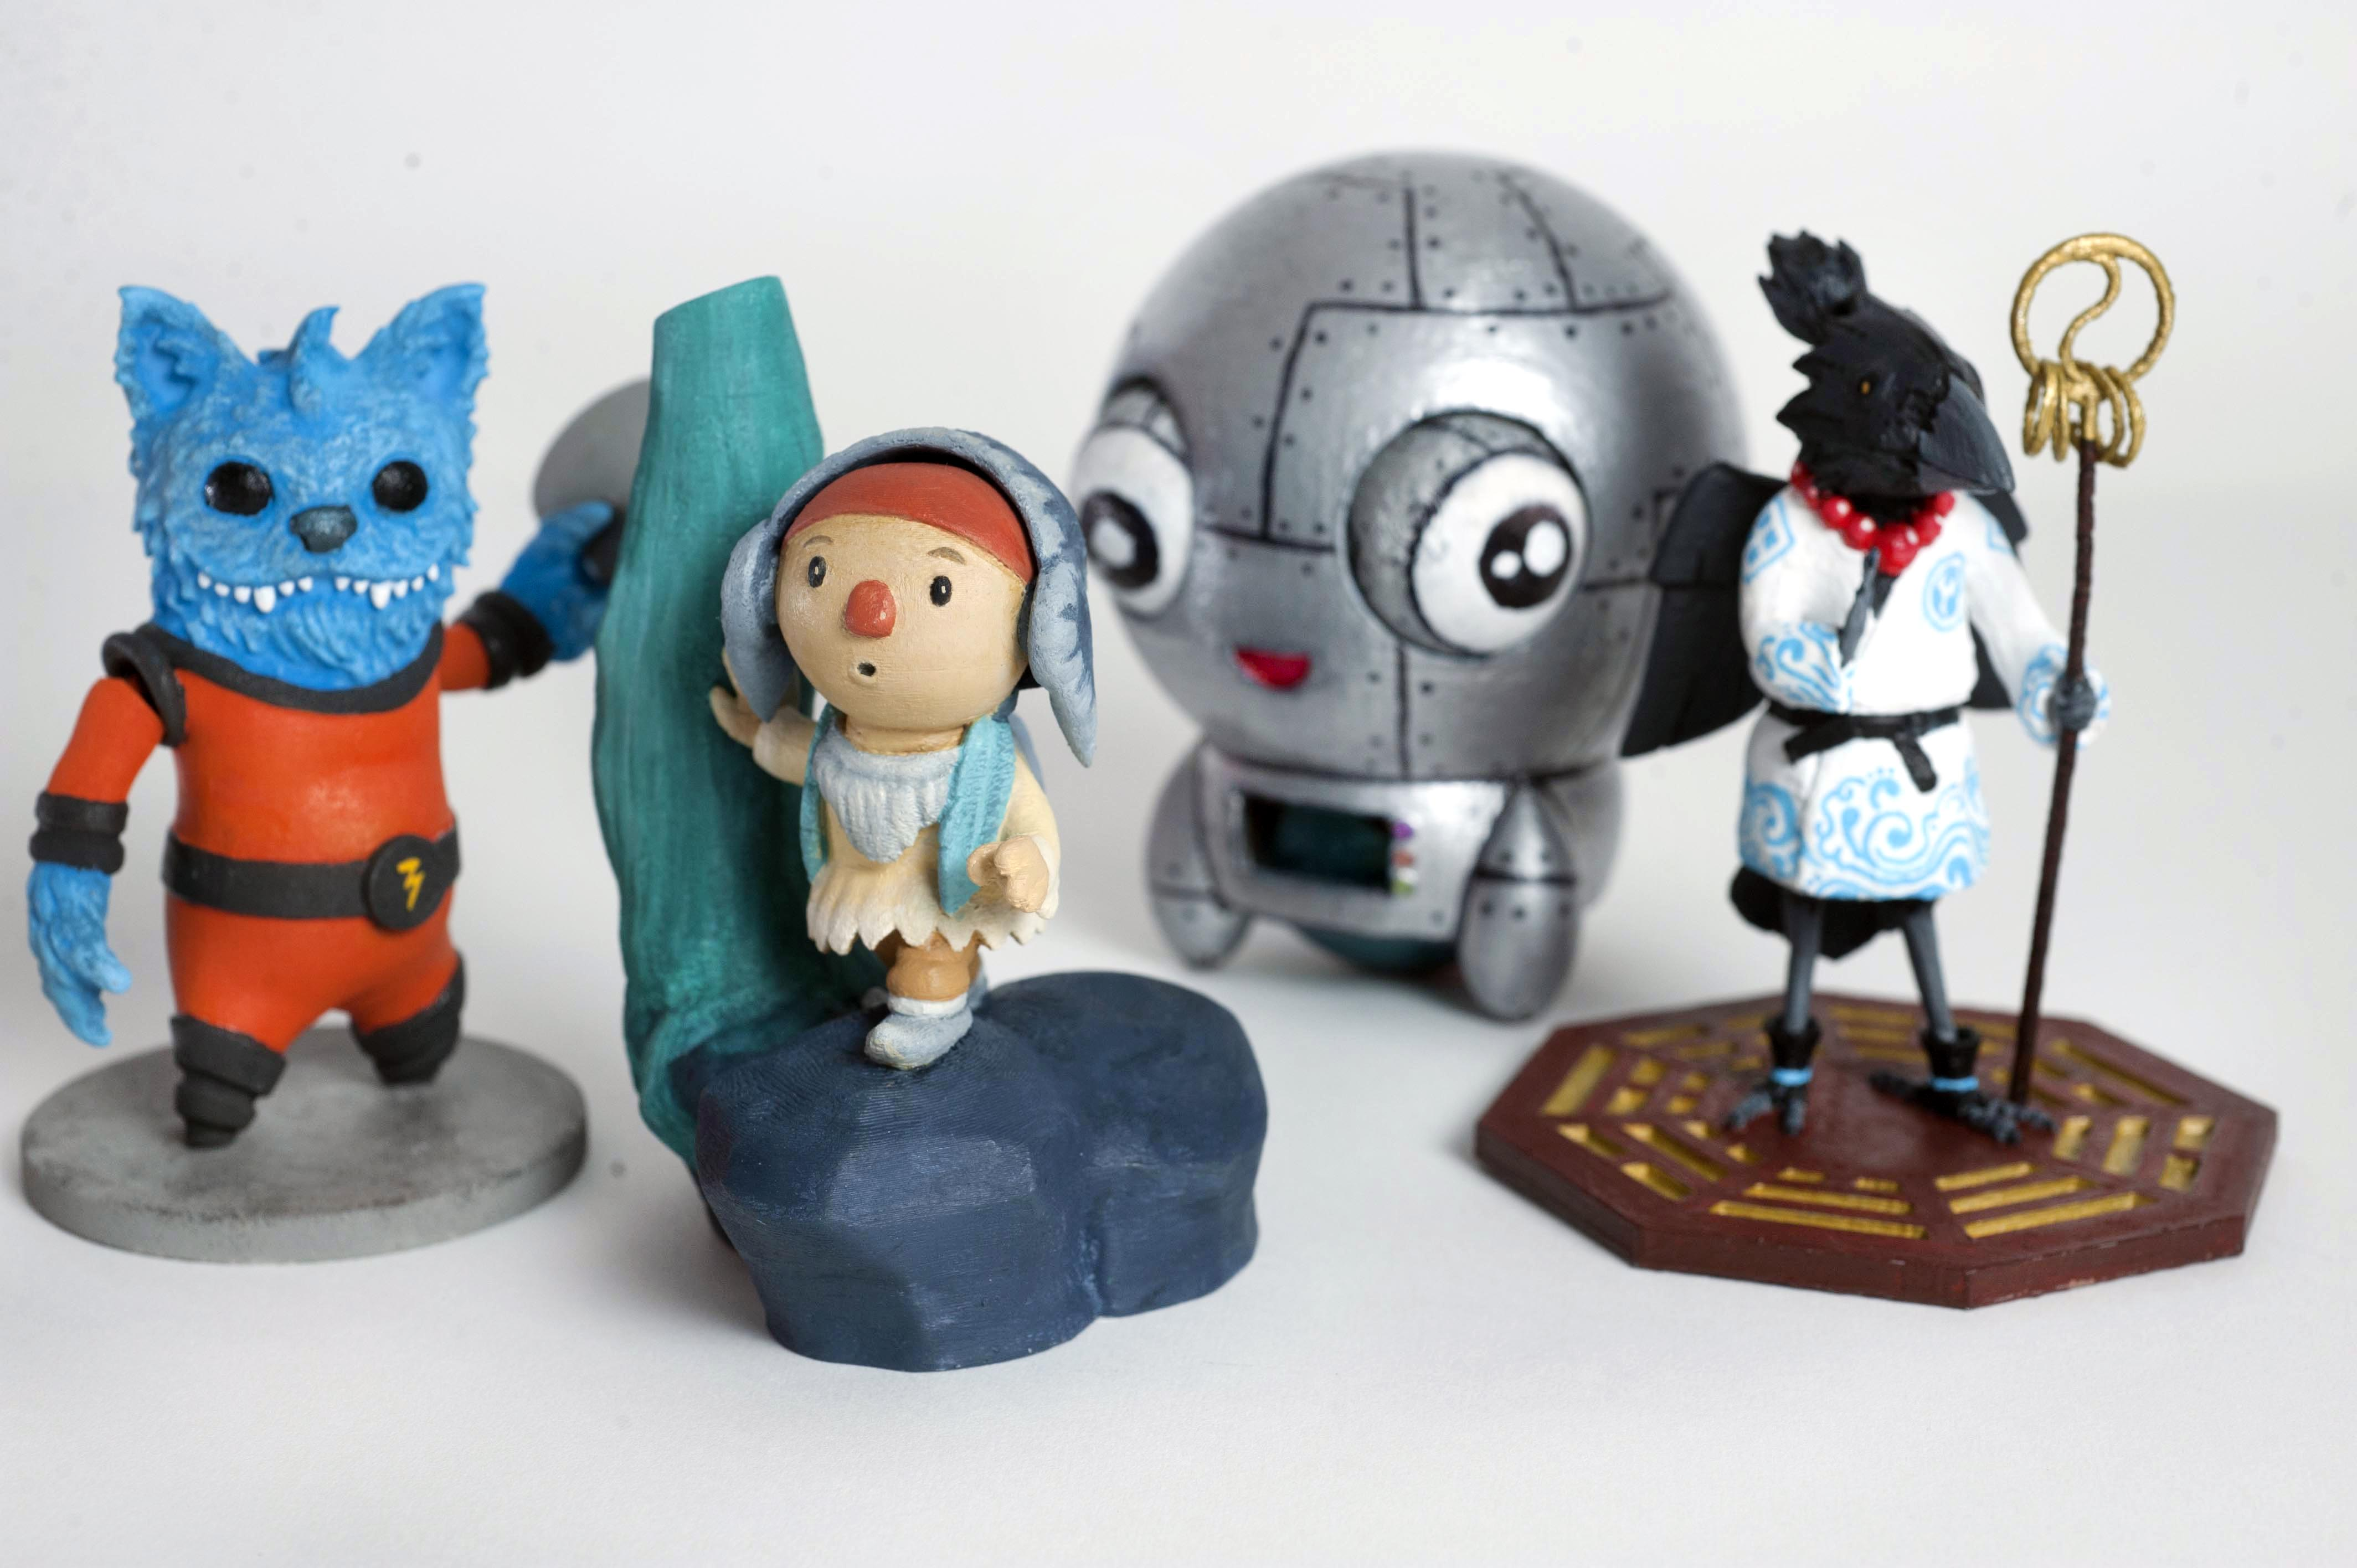 caption: Four stand out winners of the 3D Print Cup left to right: Best Individual - General Spike by Ashley Sparling, Best Character (overall winner) - Howl by Kilogramme, Best Student - Phropabot by Amy Mather and Best Team - Tengu-San by Draw & Code